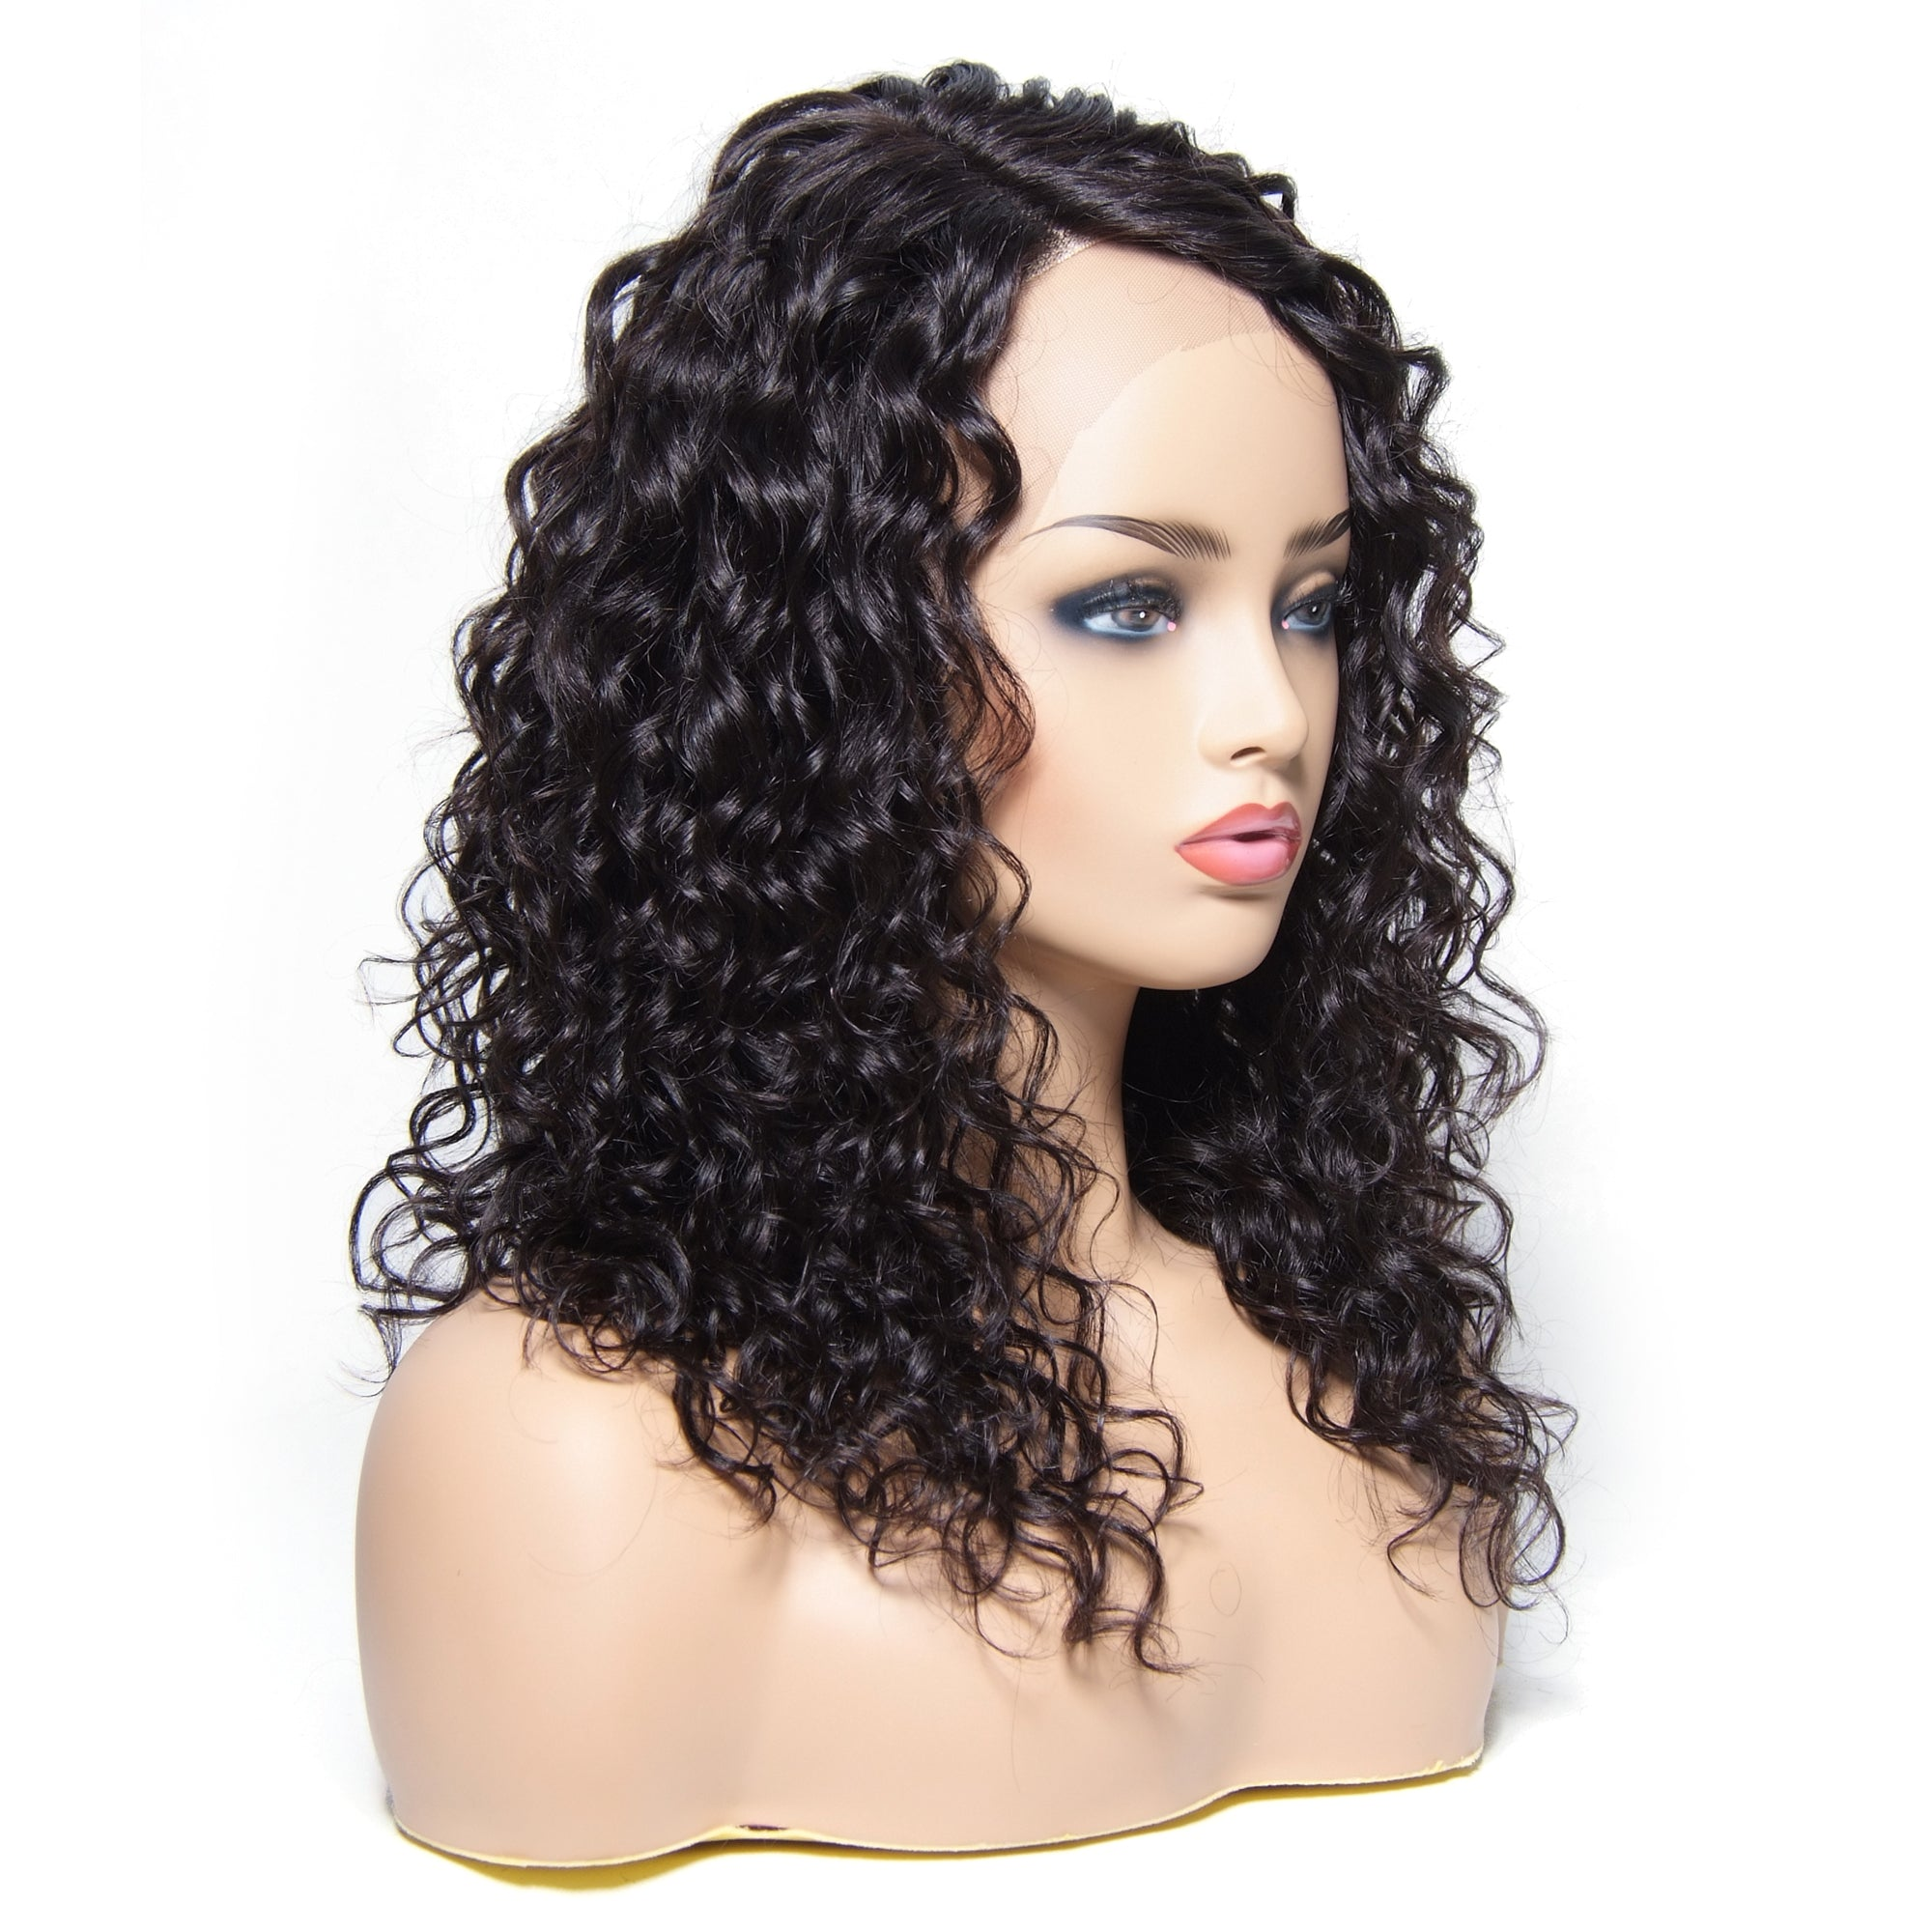 Water Wave Lace Front Human Hair Wig Free Part With Baby Hair For Woman - MSBEAUTY HAIR